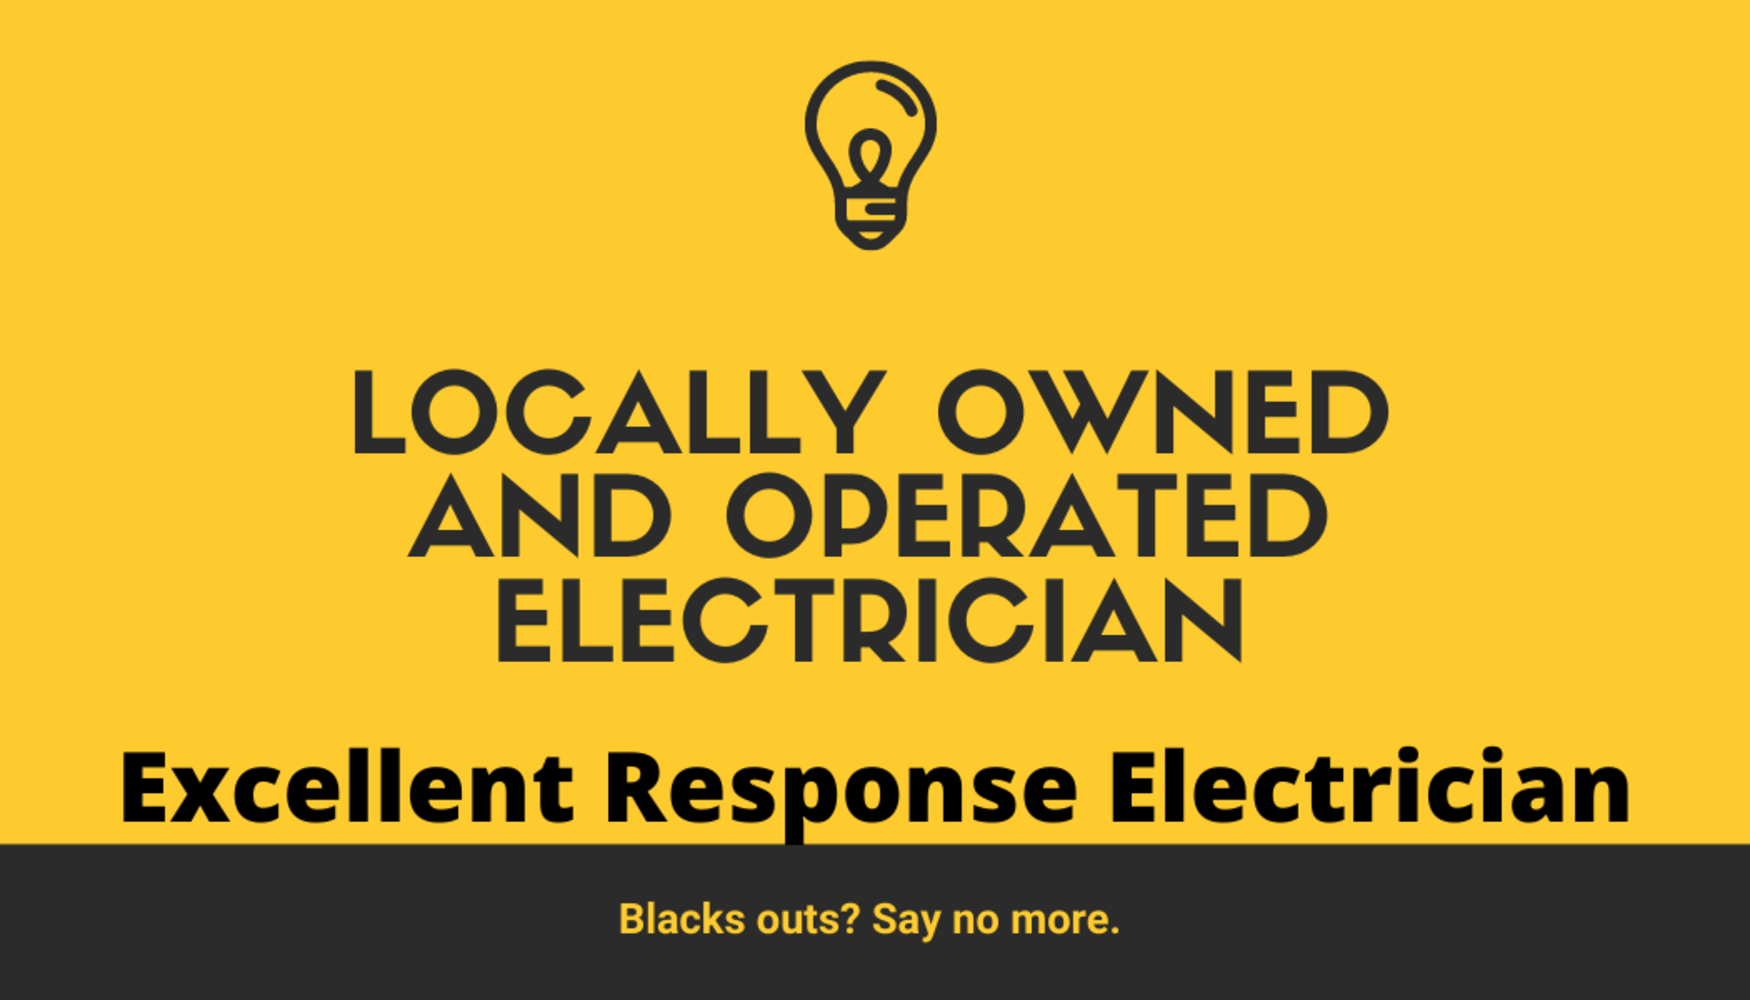 Excellent Response Electrician Offers Top Tier Electrical Repair Services In San Diego, CA